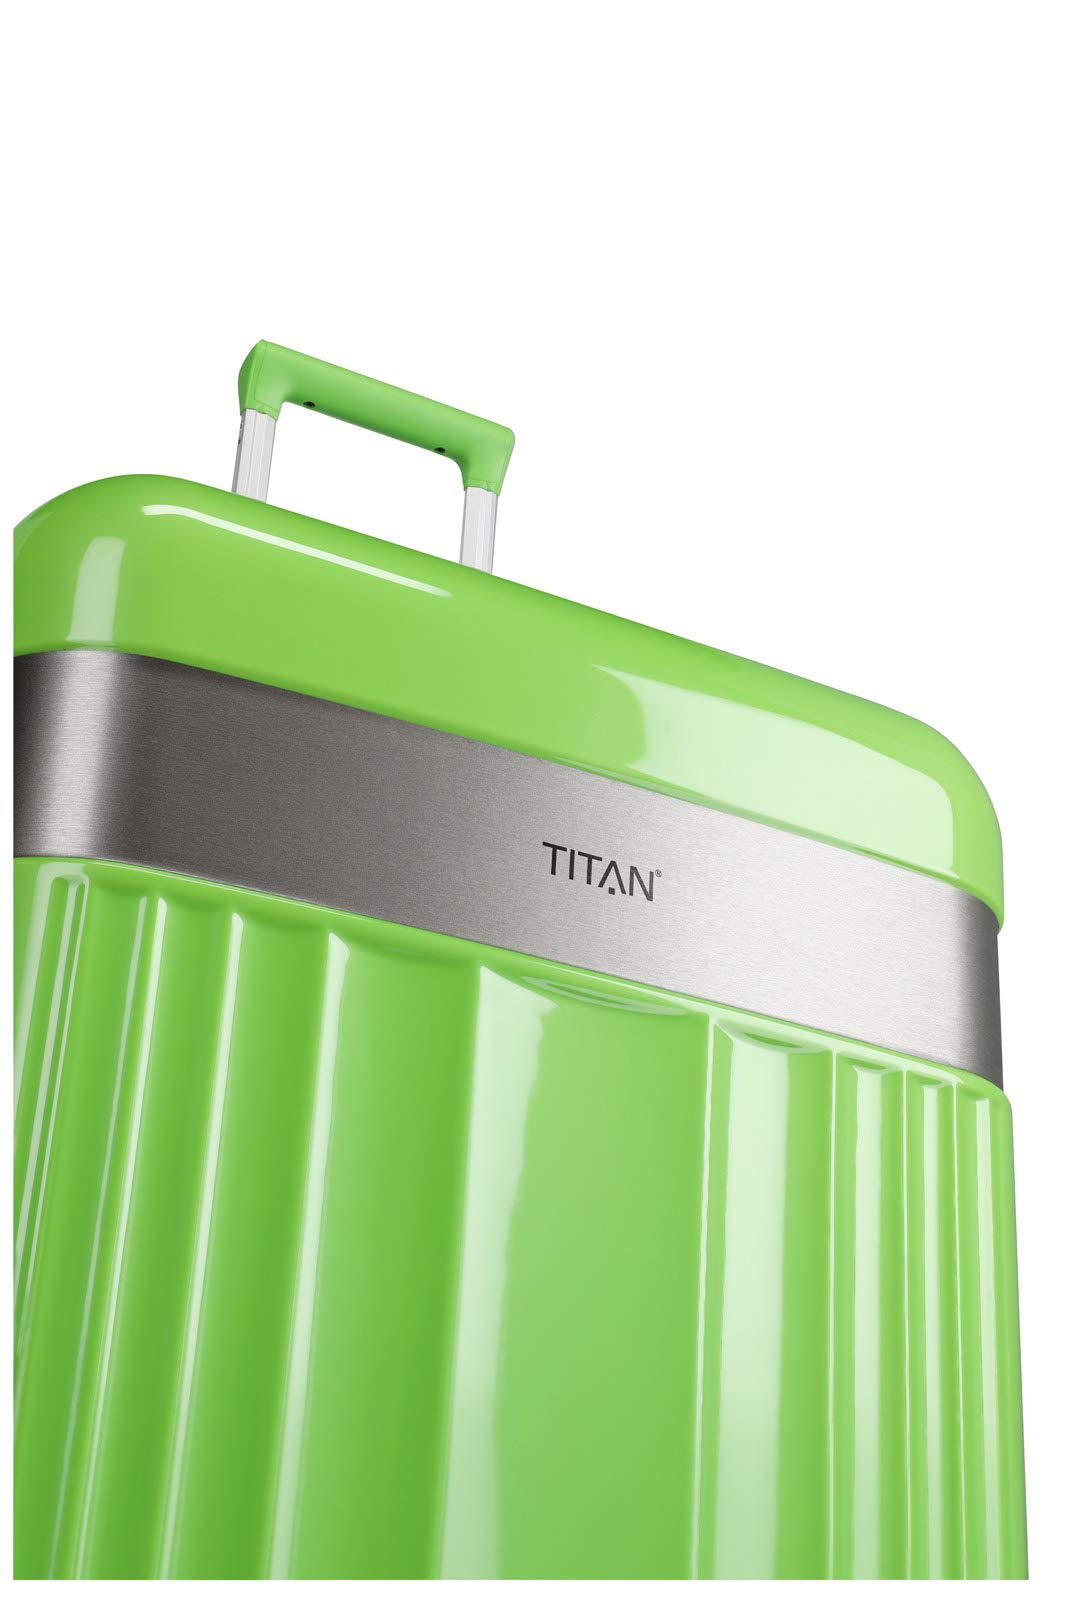 TITAN-Gepckserie-Spotlight-Flash-Edle-TITAN-Trolleys-und-Beautycases-in-knallbunten-Trendfarben-Koffer-Set-76-cm-208-Liter-Flashy-Kiwi